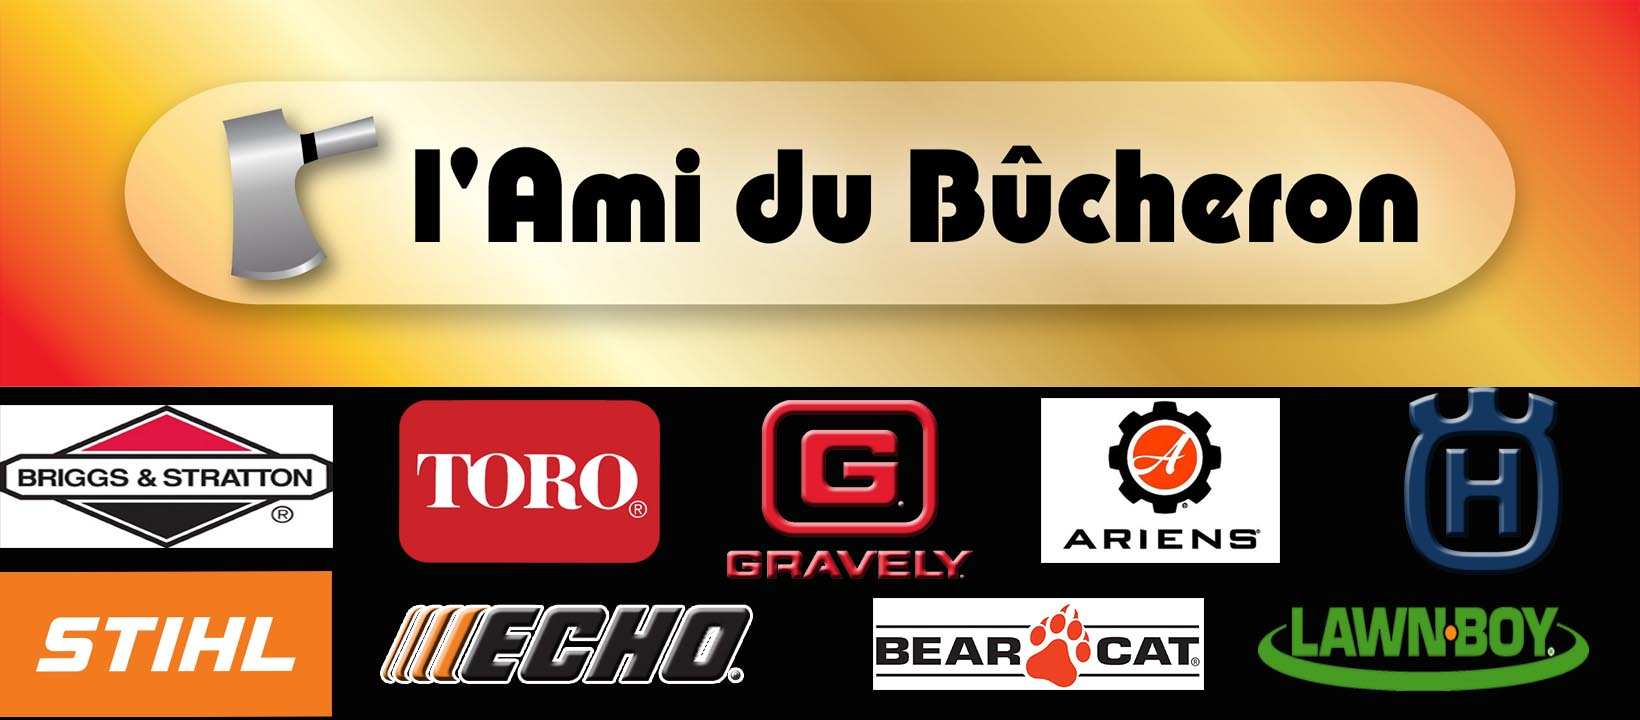 BANNER OF OUR BRANDS